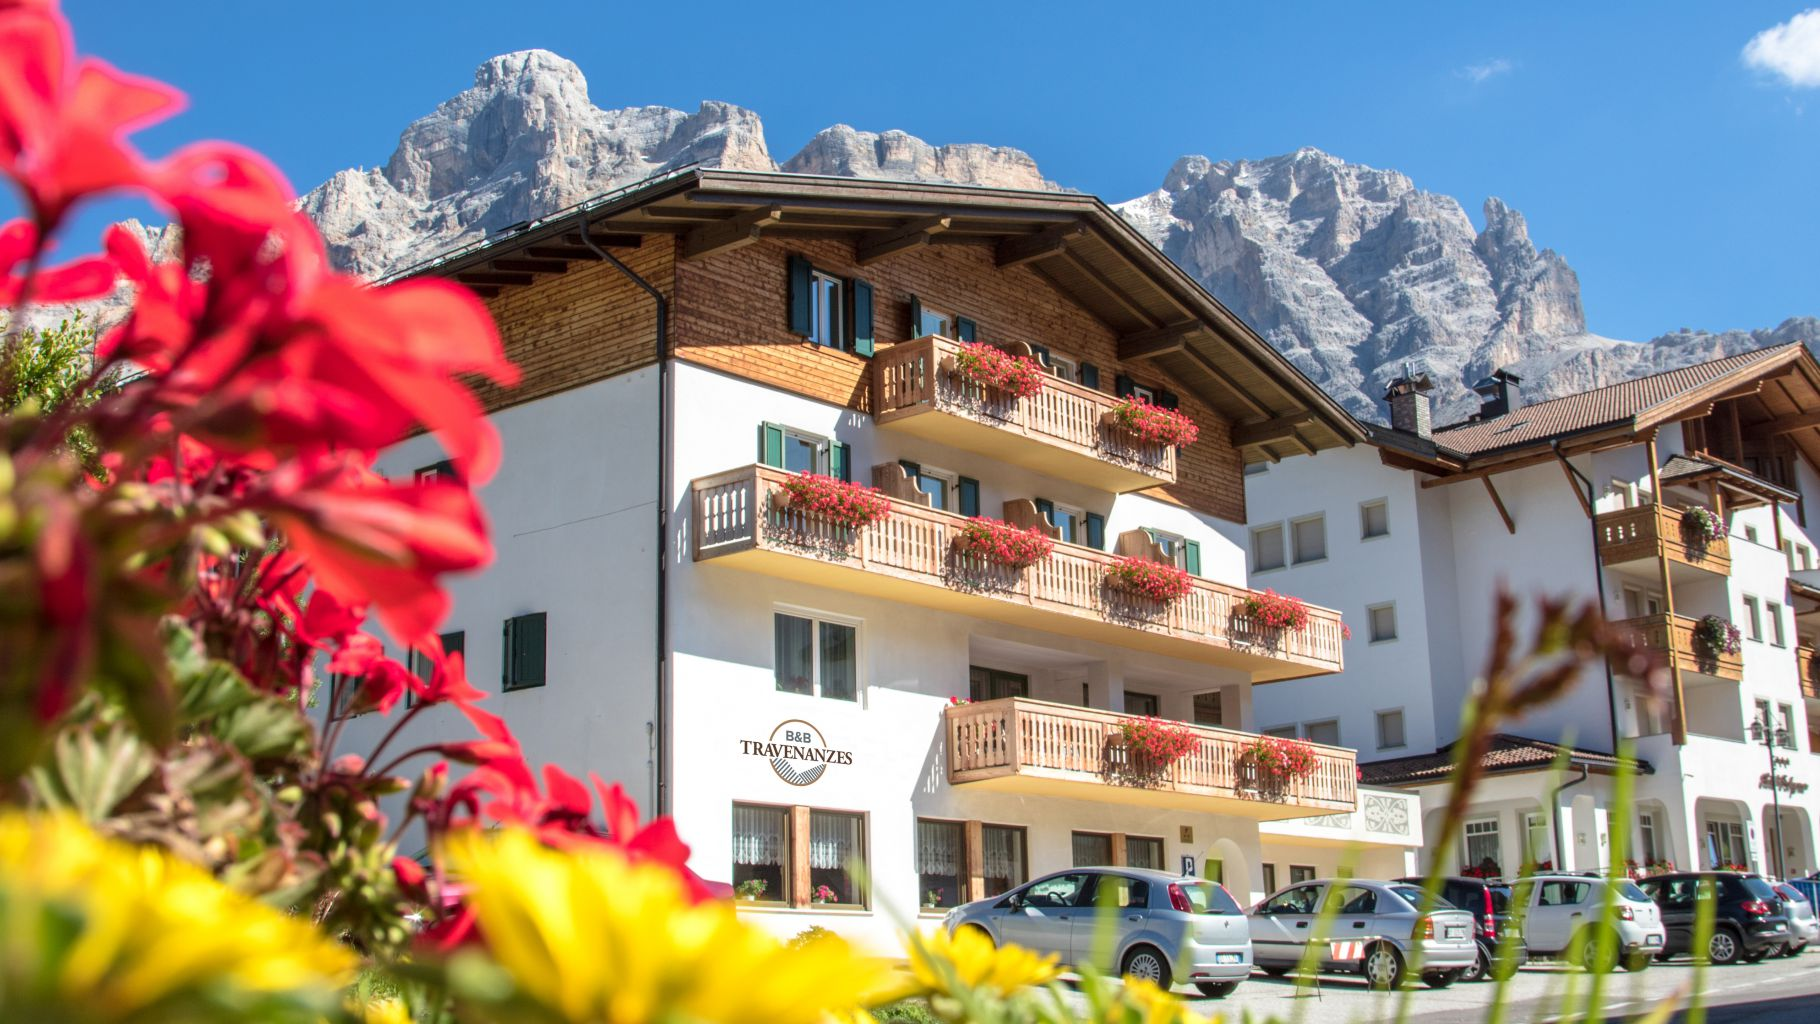 Bed and Breakfast Travenanzes in Alta Badia